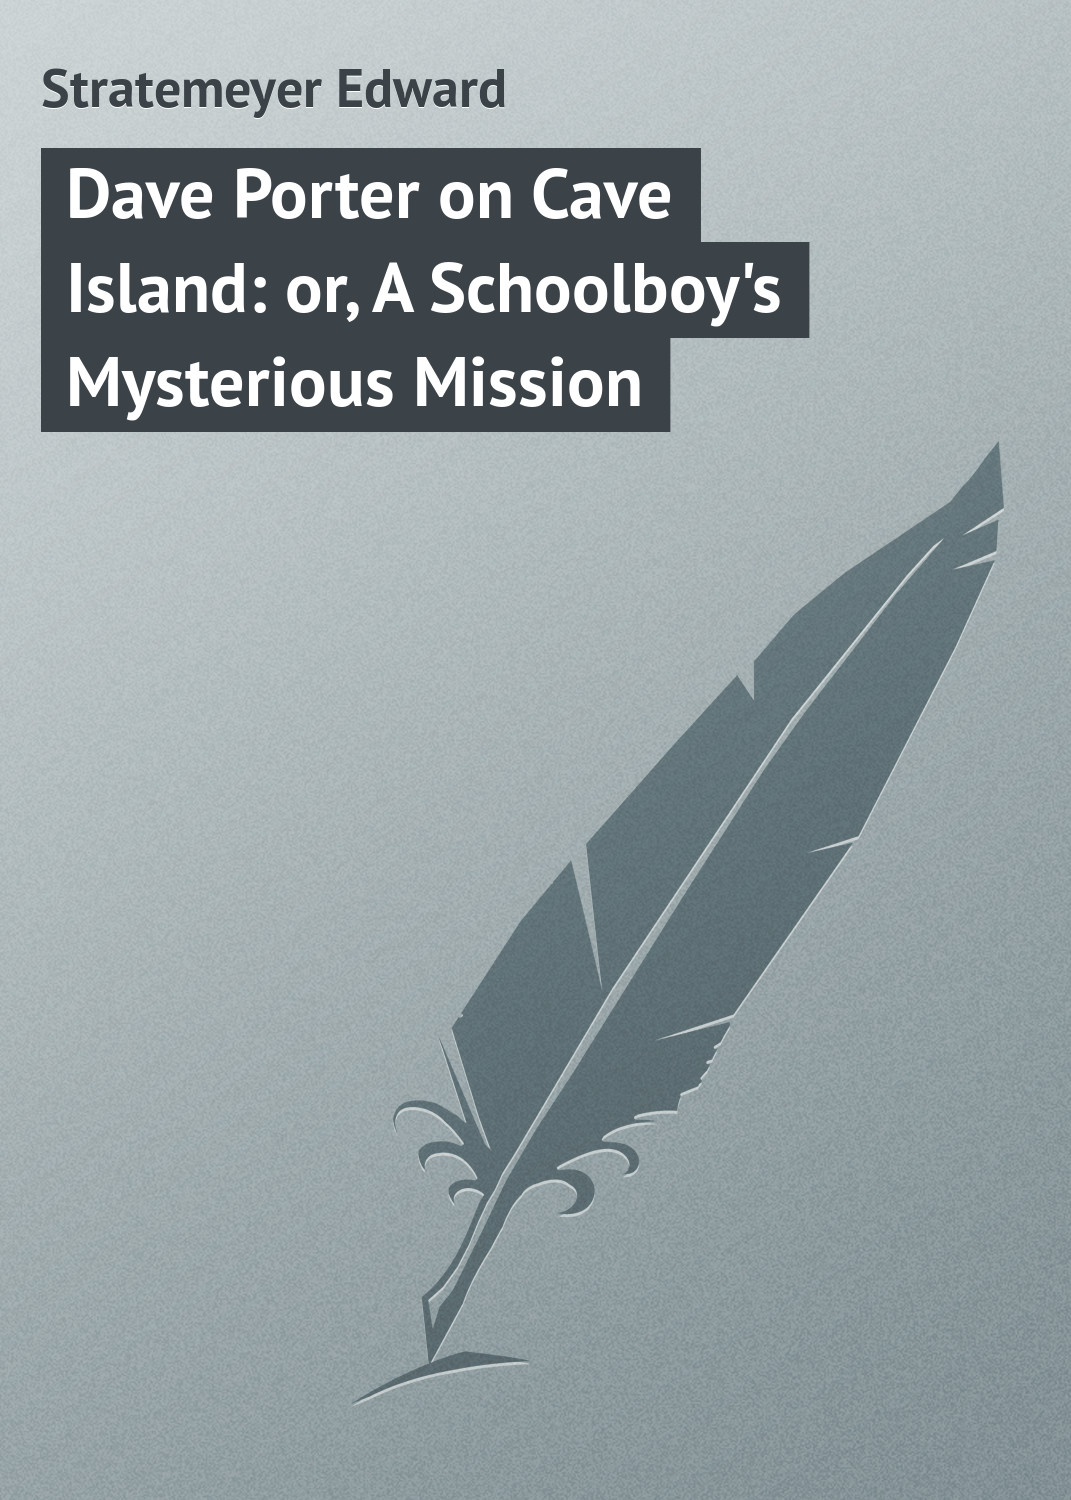 Stratemeyer Edward Dave Porter on Cave Island: or, A Schoolboy's Mysterious Mission